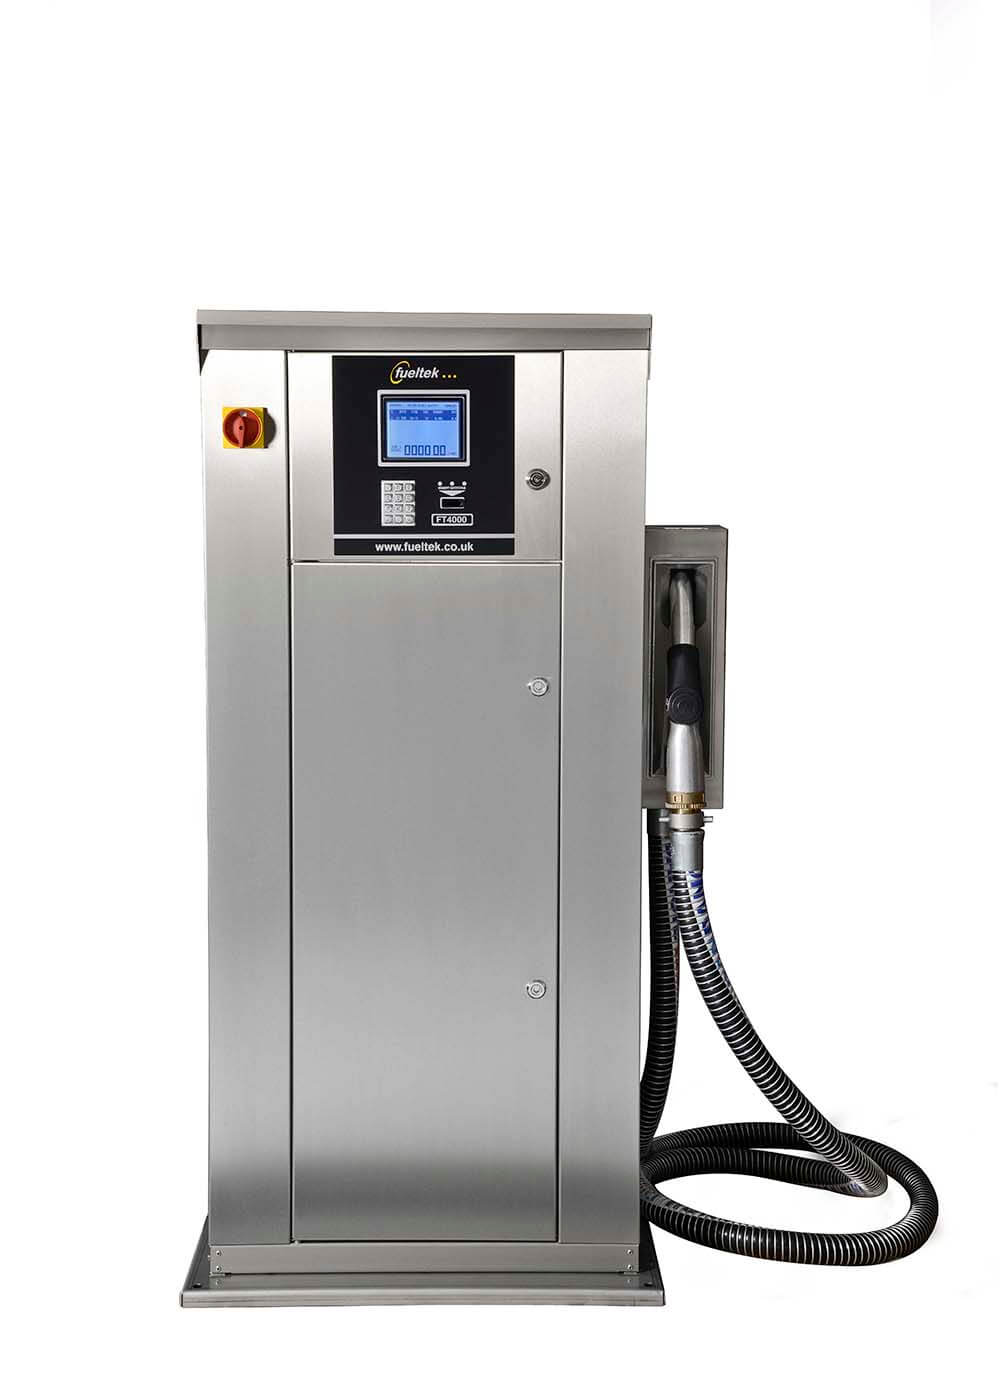 The FuelTek FT4000 high speed fuel pump on a white background